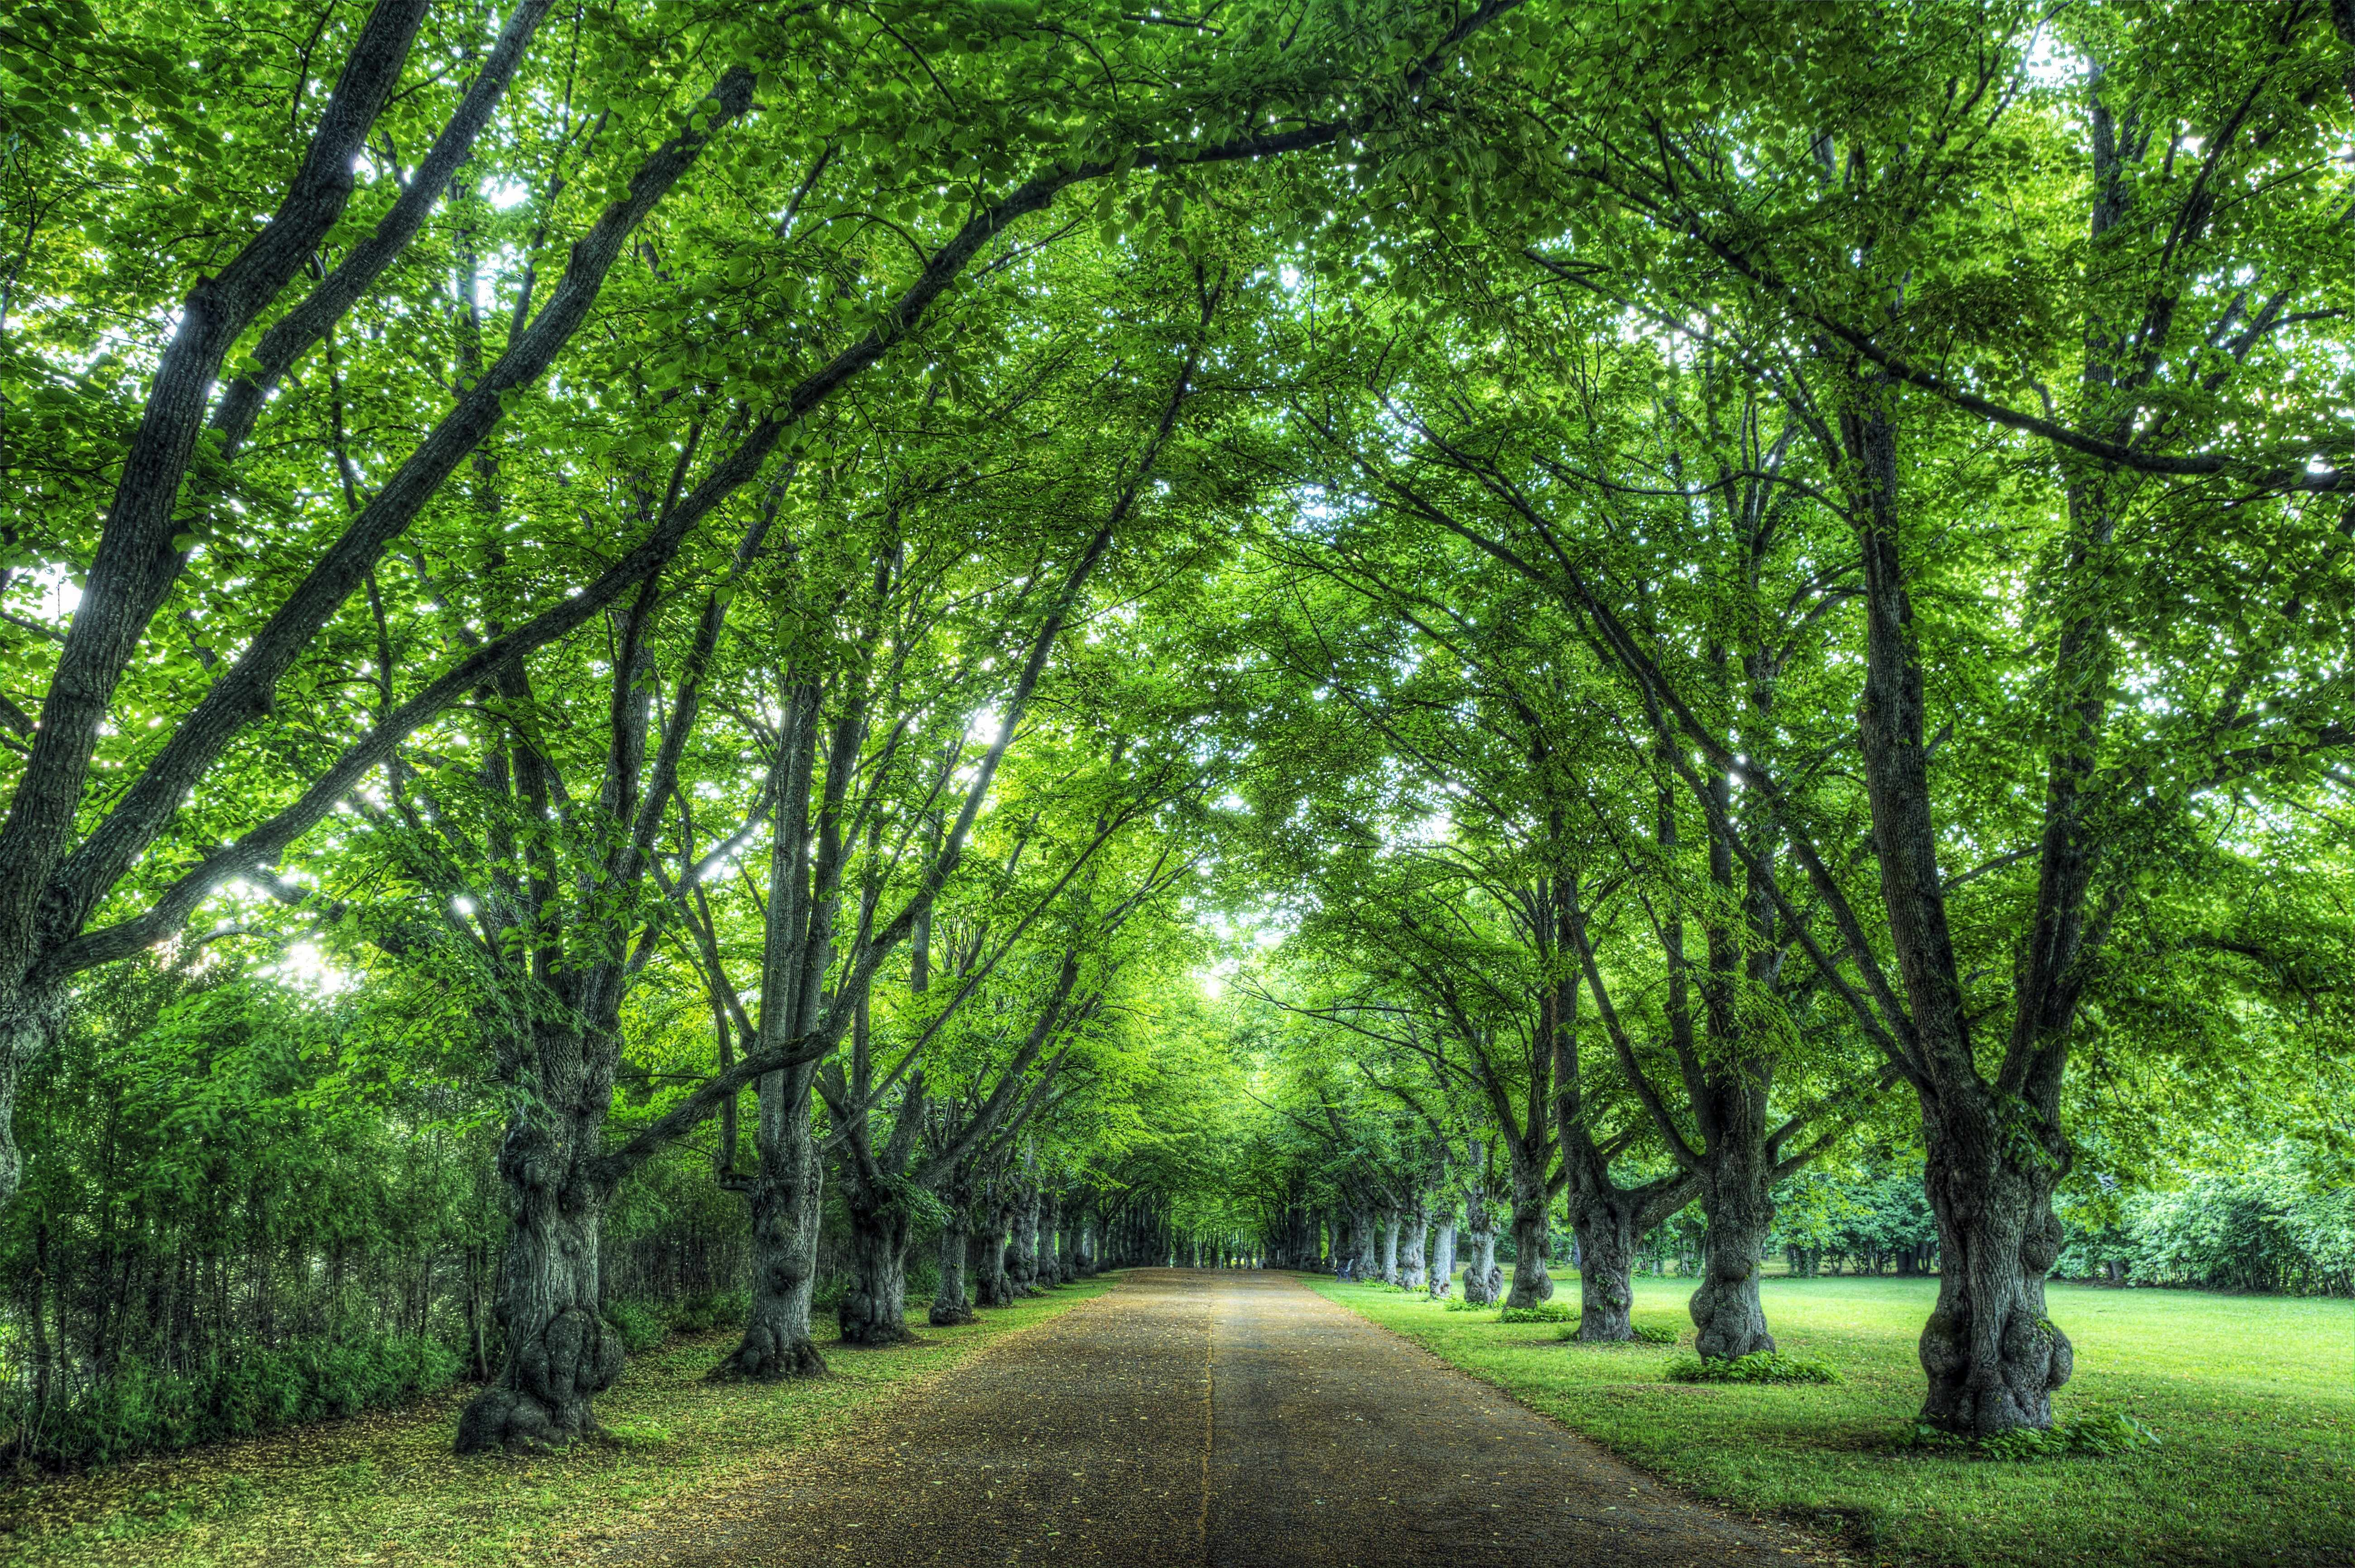 a road lined with green leafy trees, like a tunnel